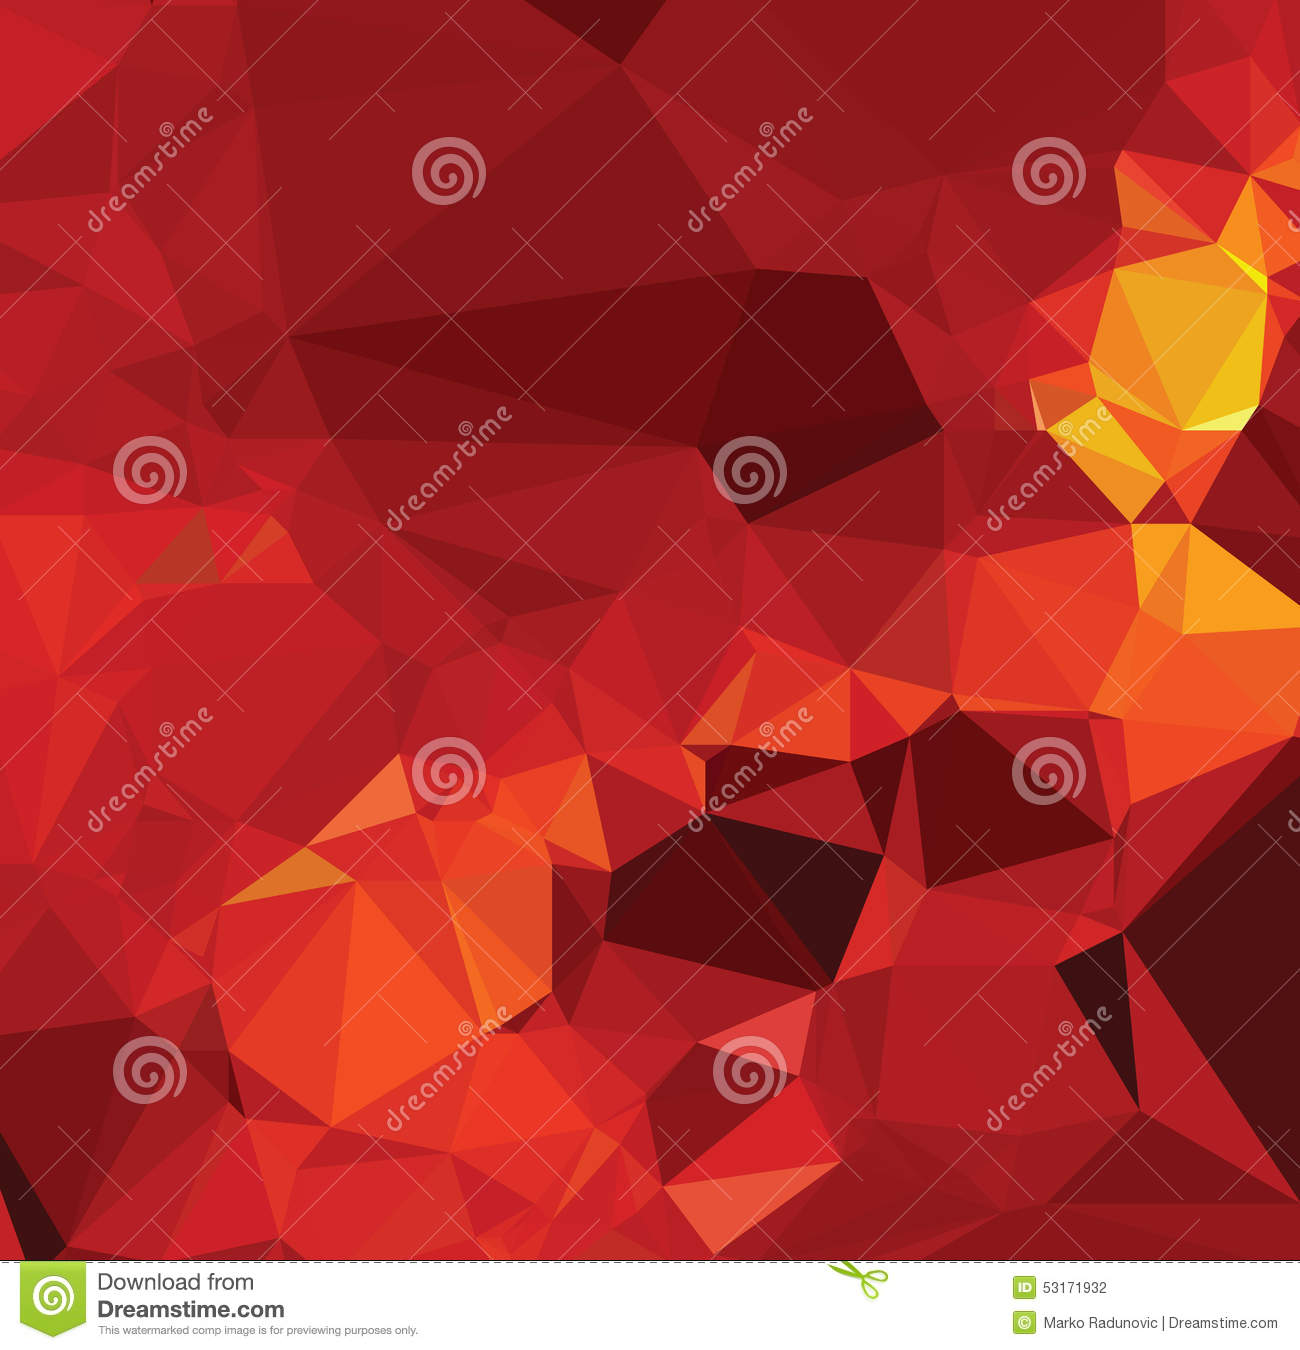 Download Background Modern Texture Triangle Geometry Red Fight Abstract Stock Illustration - Illustration of background, illustration: 53171932